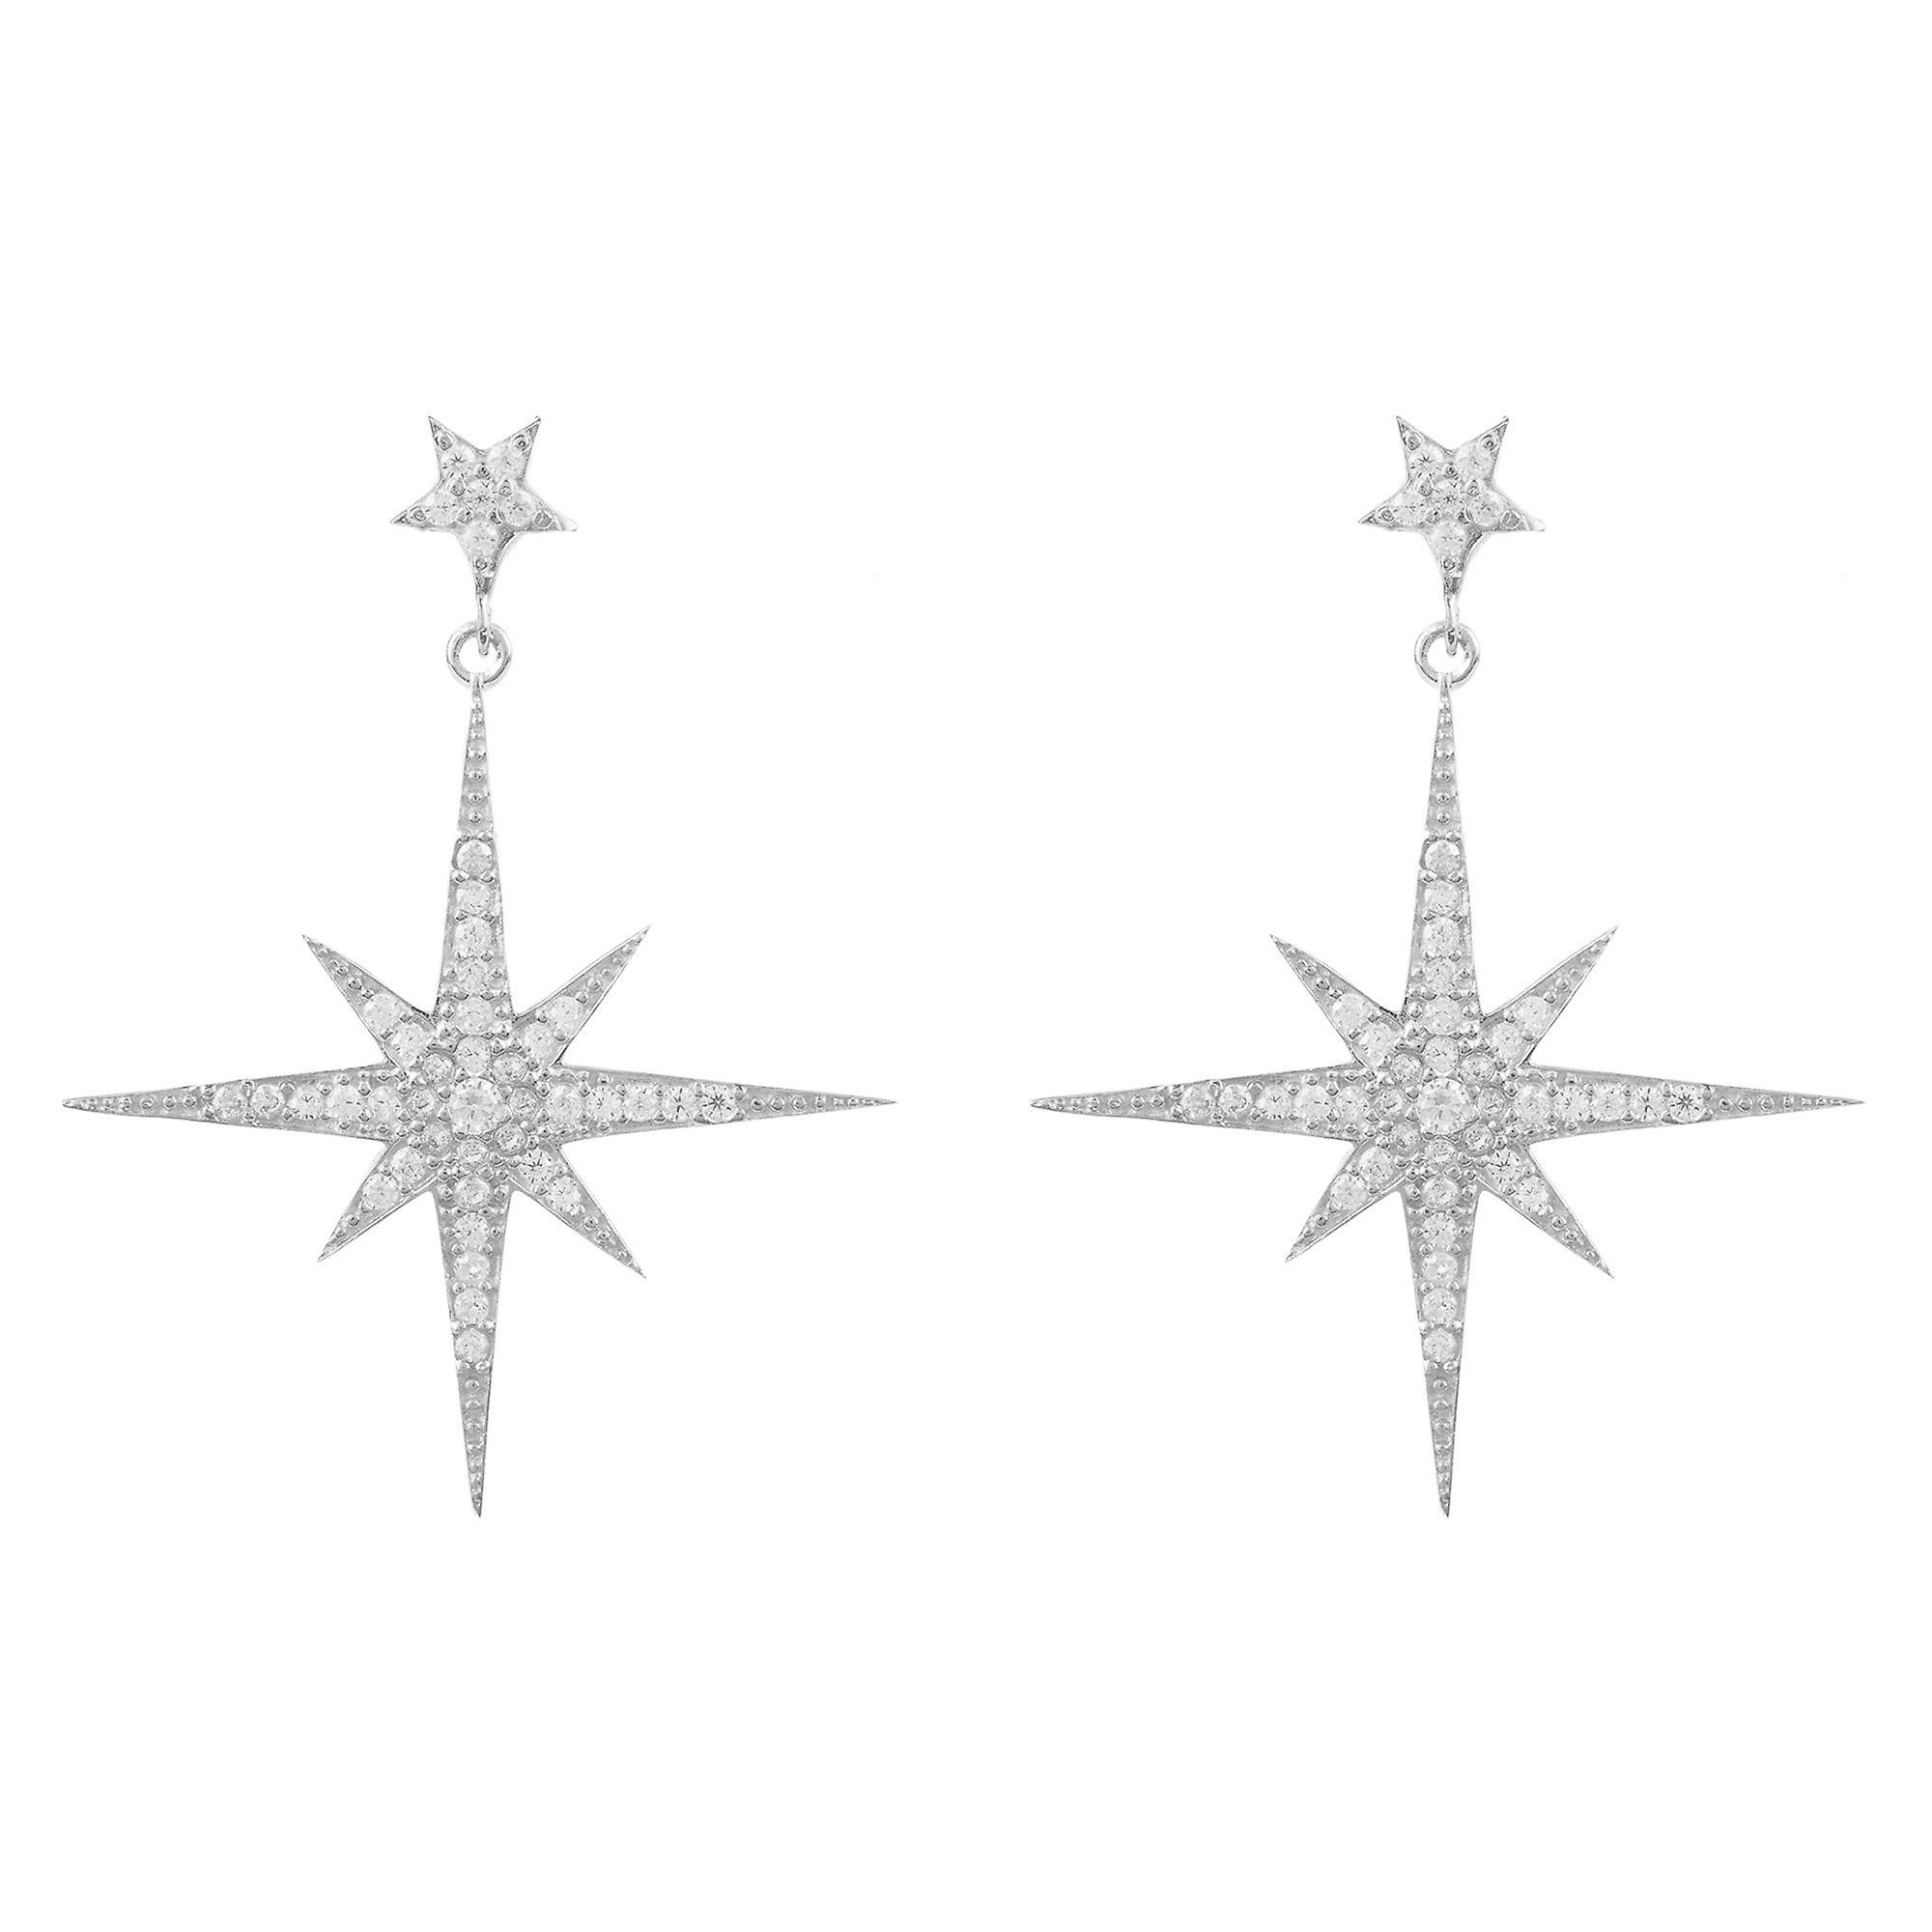 Latelita Earrings 925 Sterling Silver Star Burst Starburst Wedding Bridal CZ